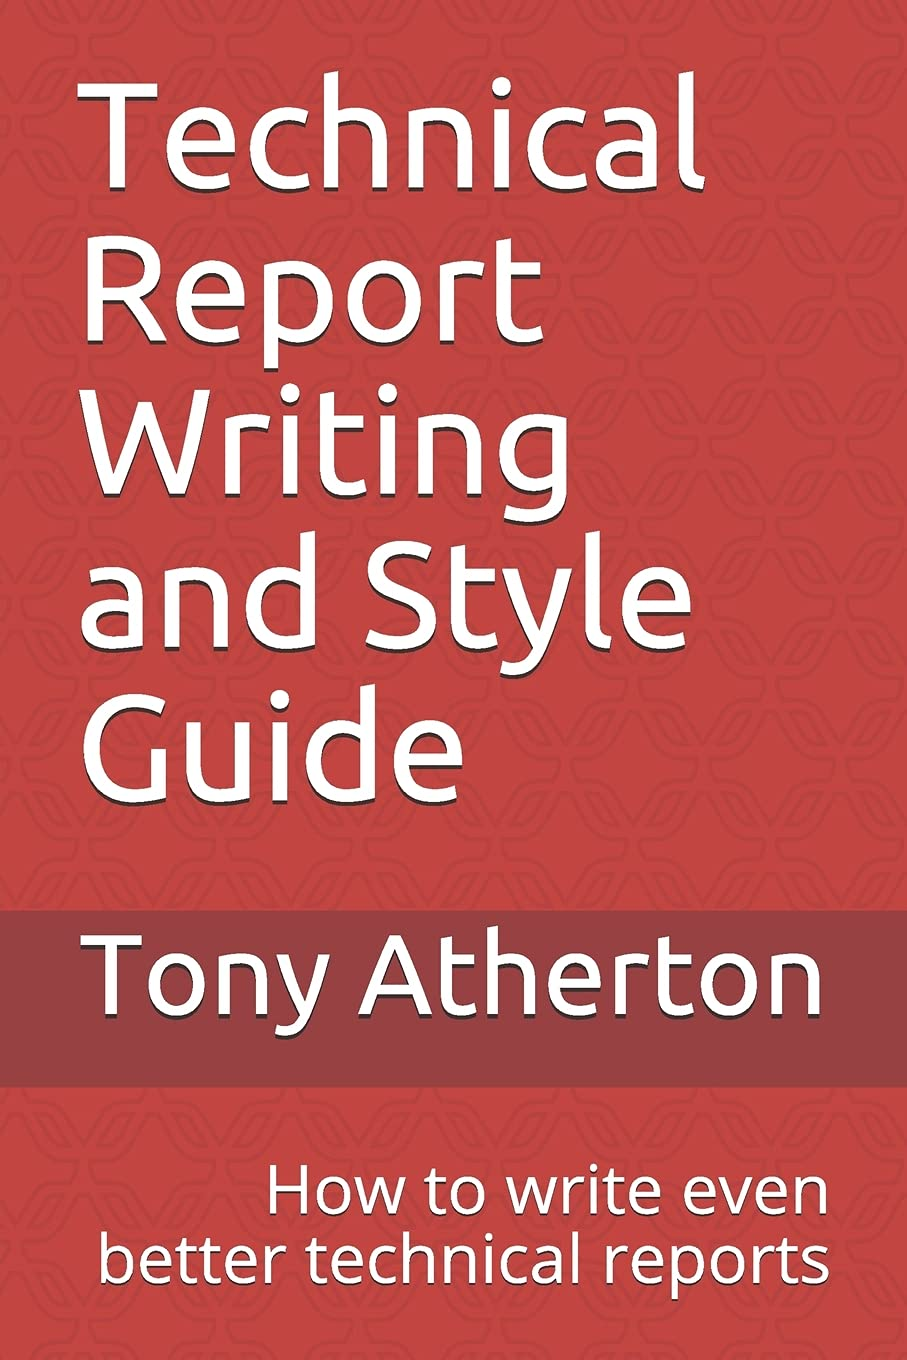 Technical Report Writing and Style Guide: How to write even better